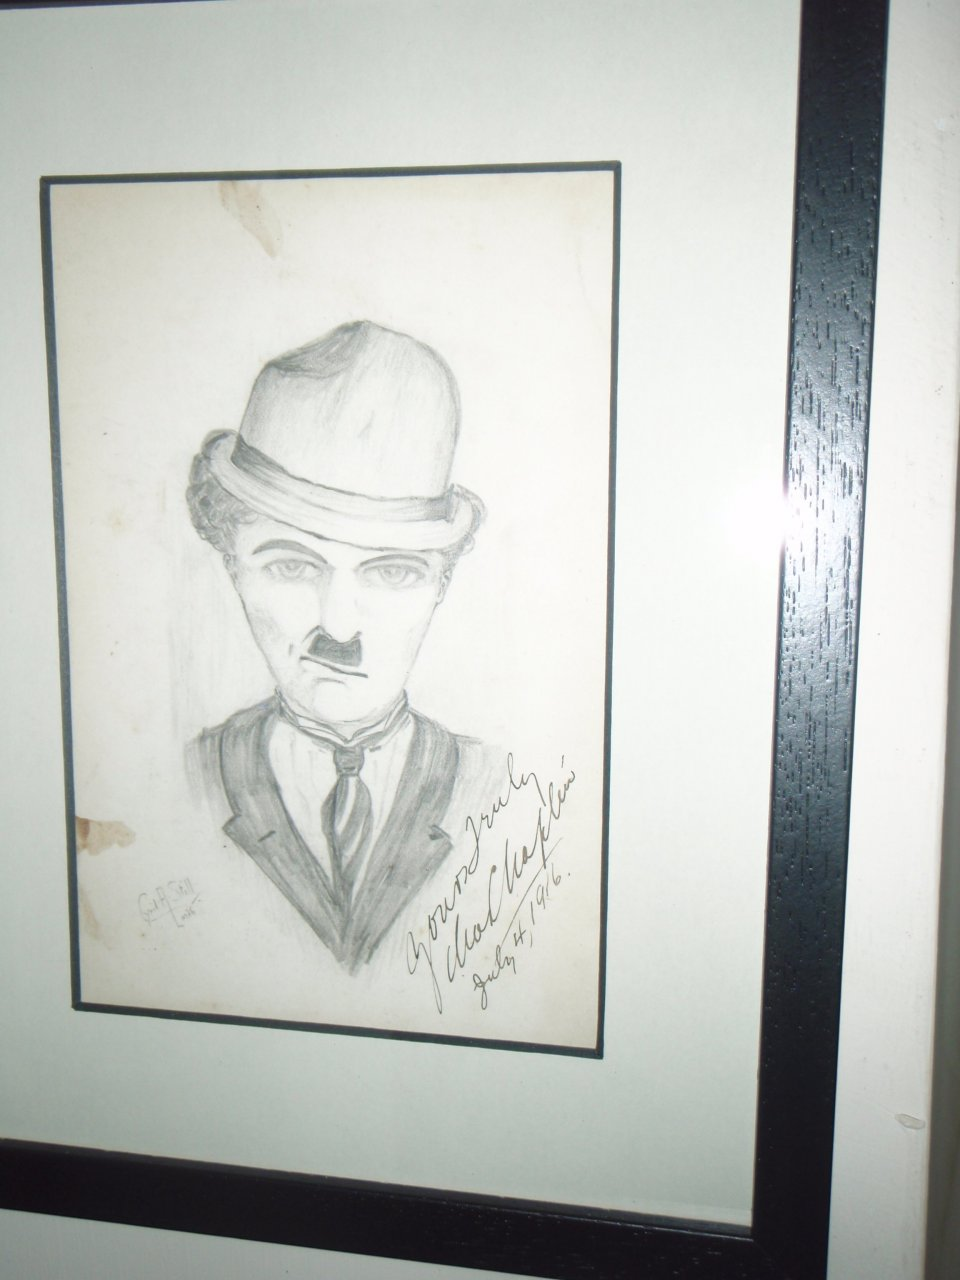 Hi this is a pencil drawing of chaz chaplin signed july 4th 1916 i purchas